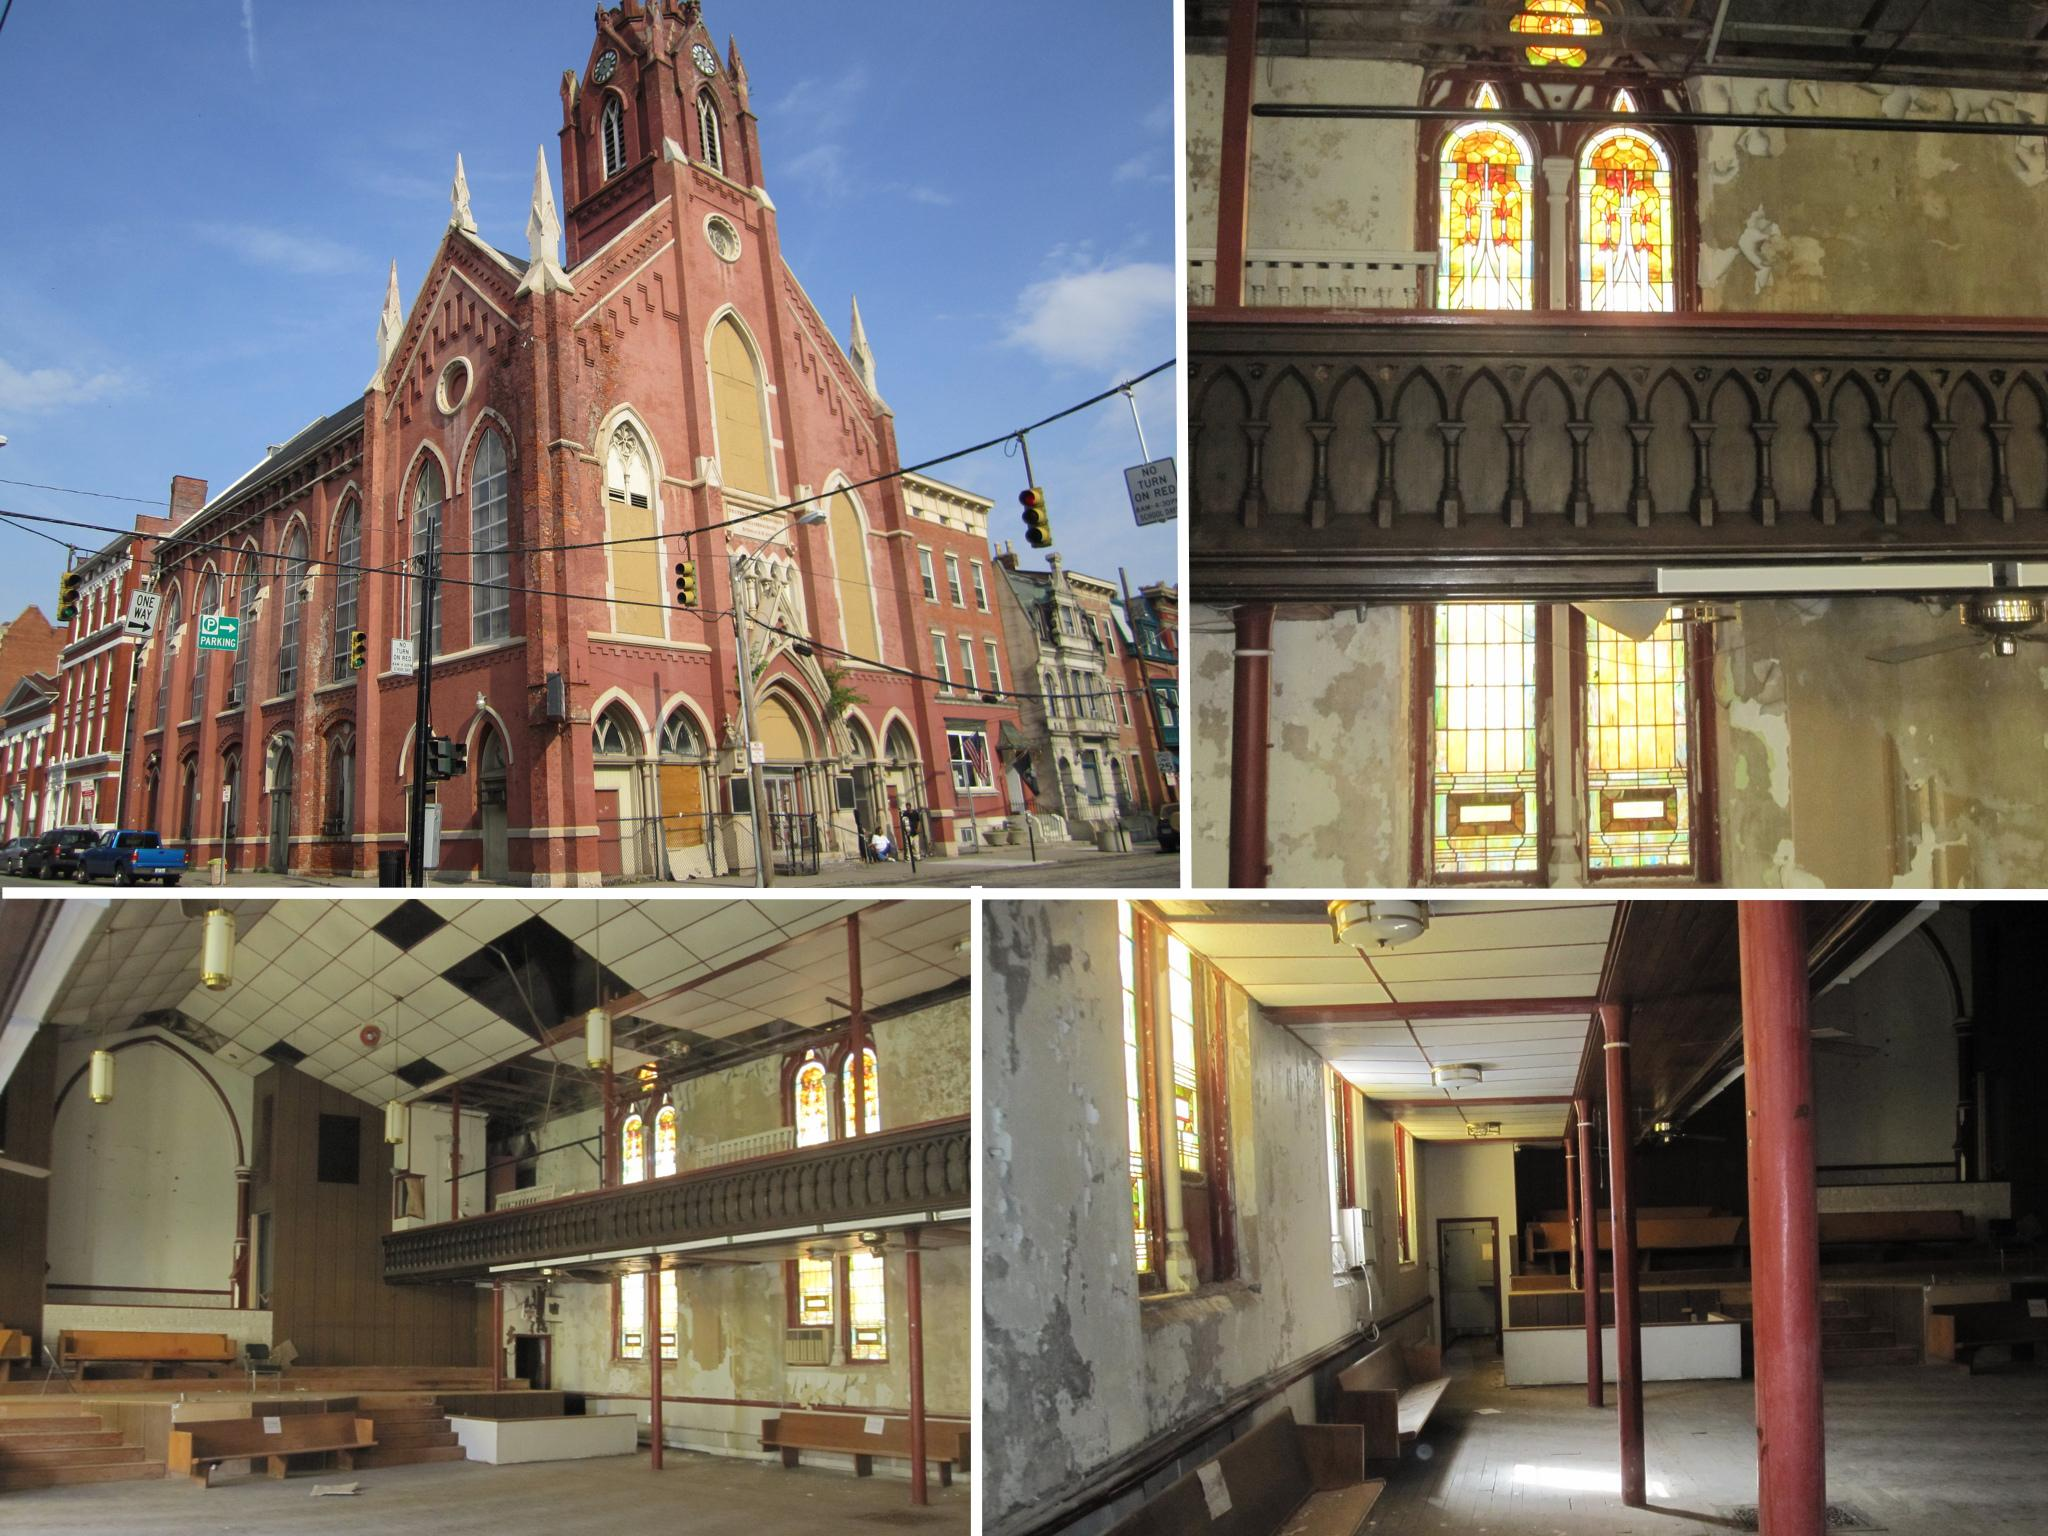 THE TRANSEPT (Before) / ADDRESS: 1205 Elm Street (45202) / CREDIT: $490,000 / PREVIOUSLY: St. John's Church / Images courtesy of the Ohio Department of Taxation, CC by 2.0, with changes